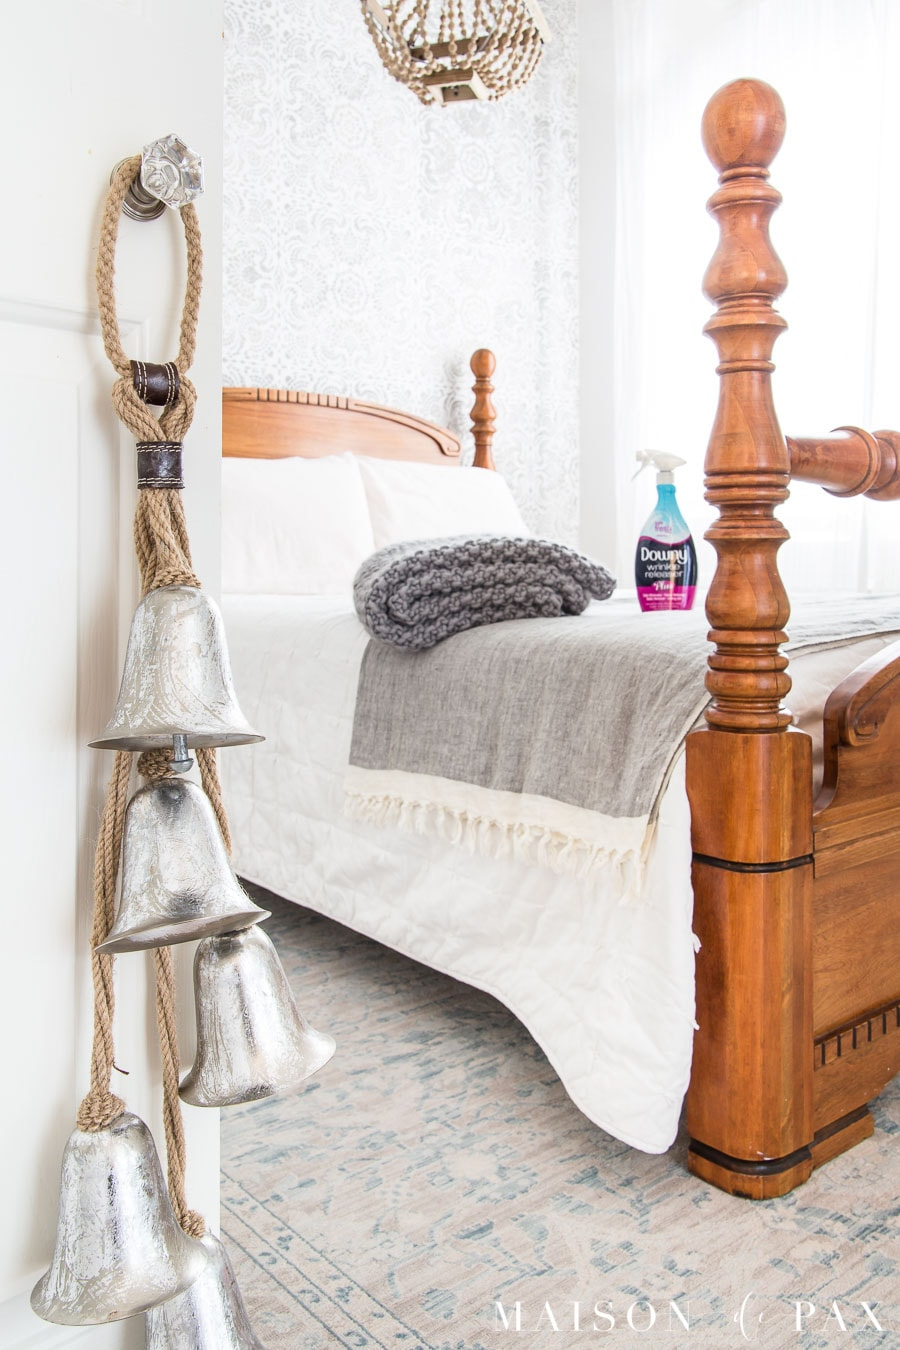 silver bells hanging on a closet door with an antique bed beyond